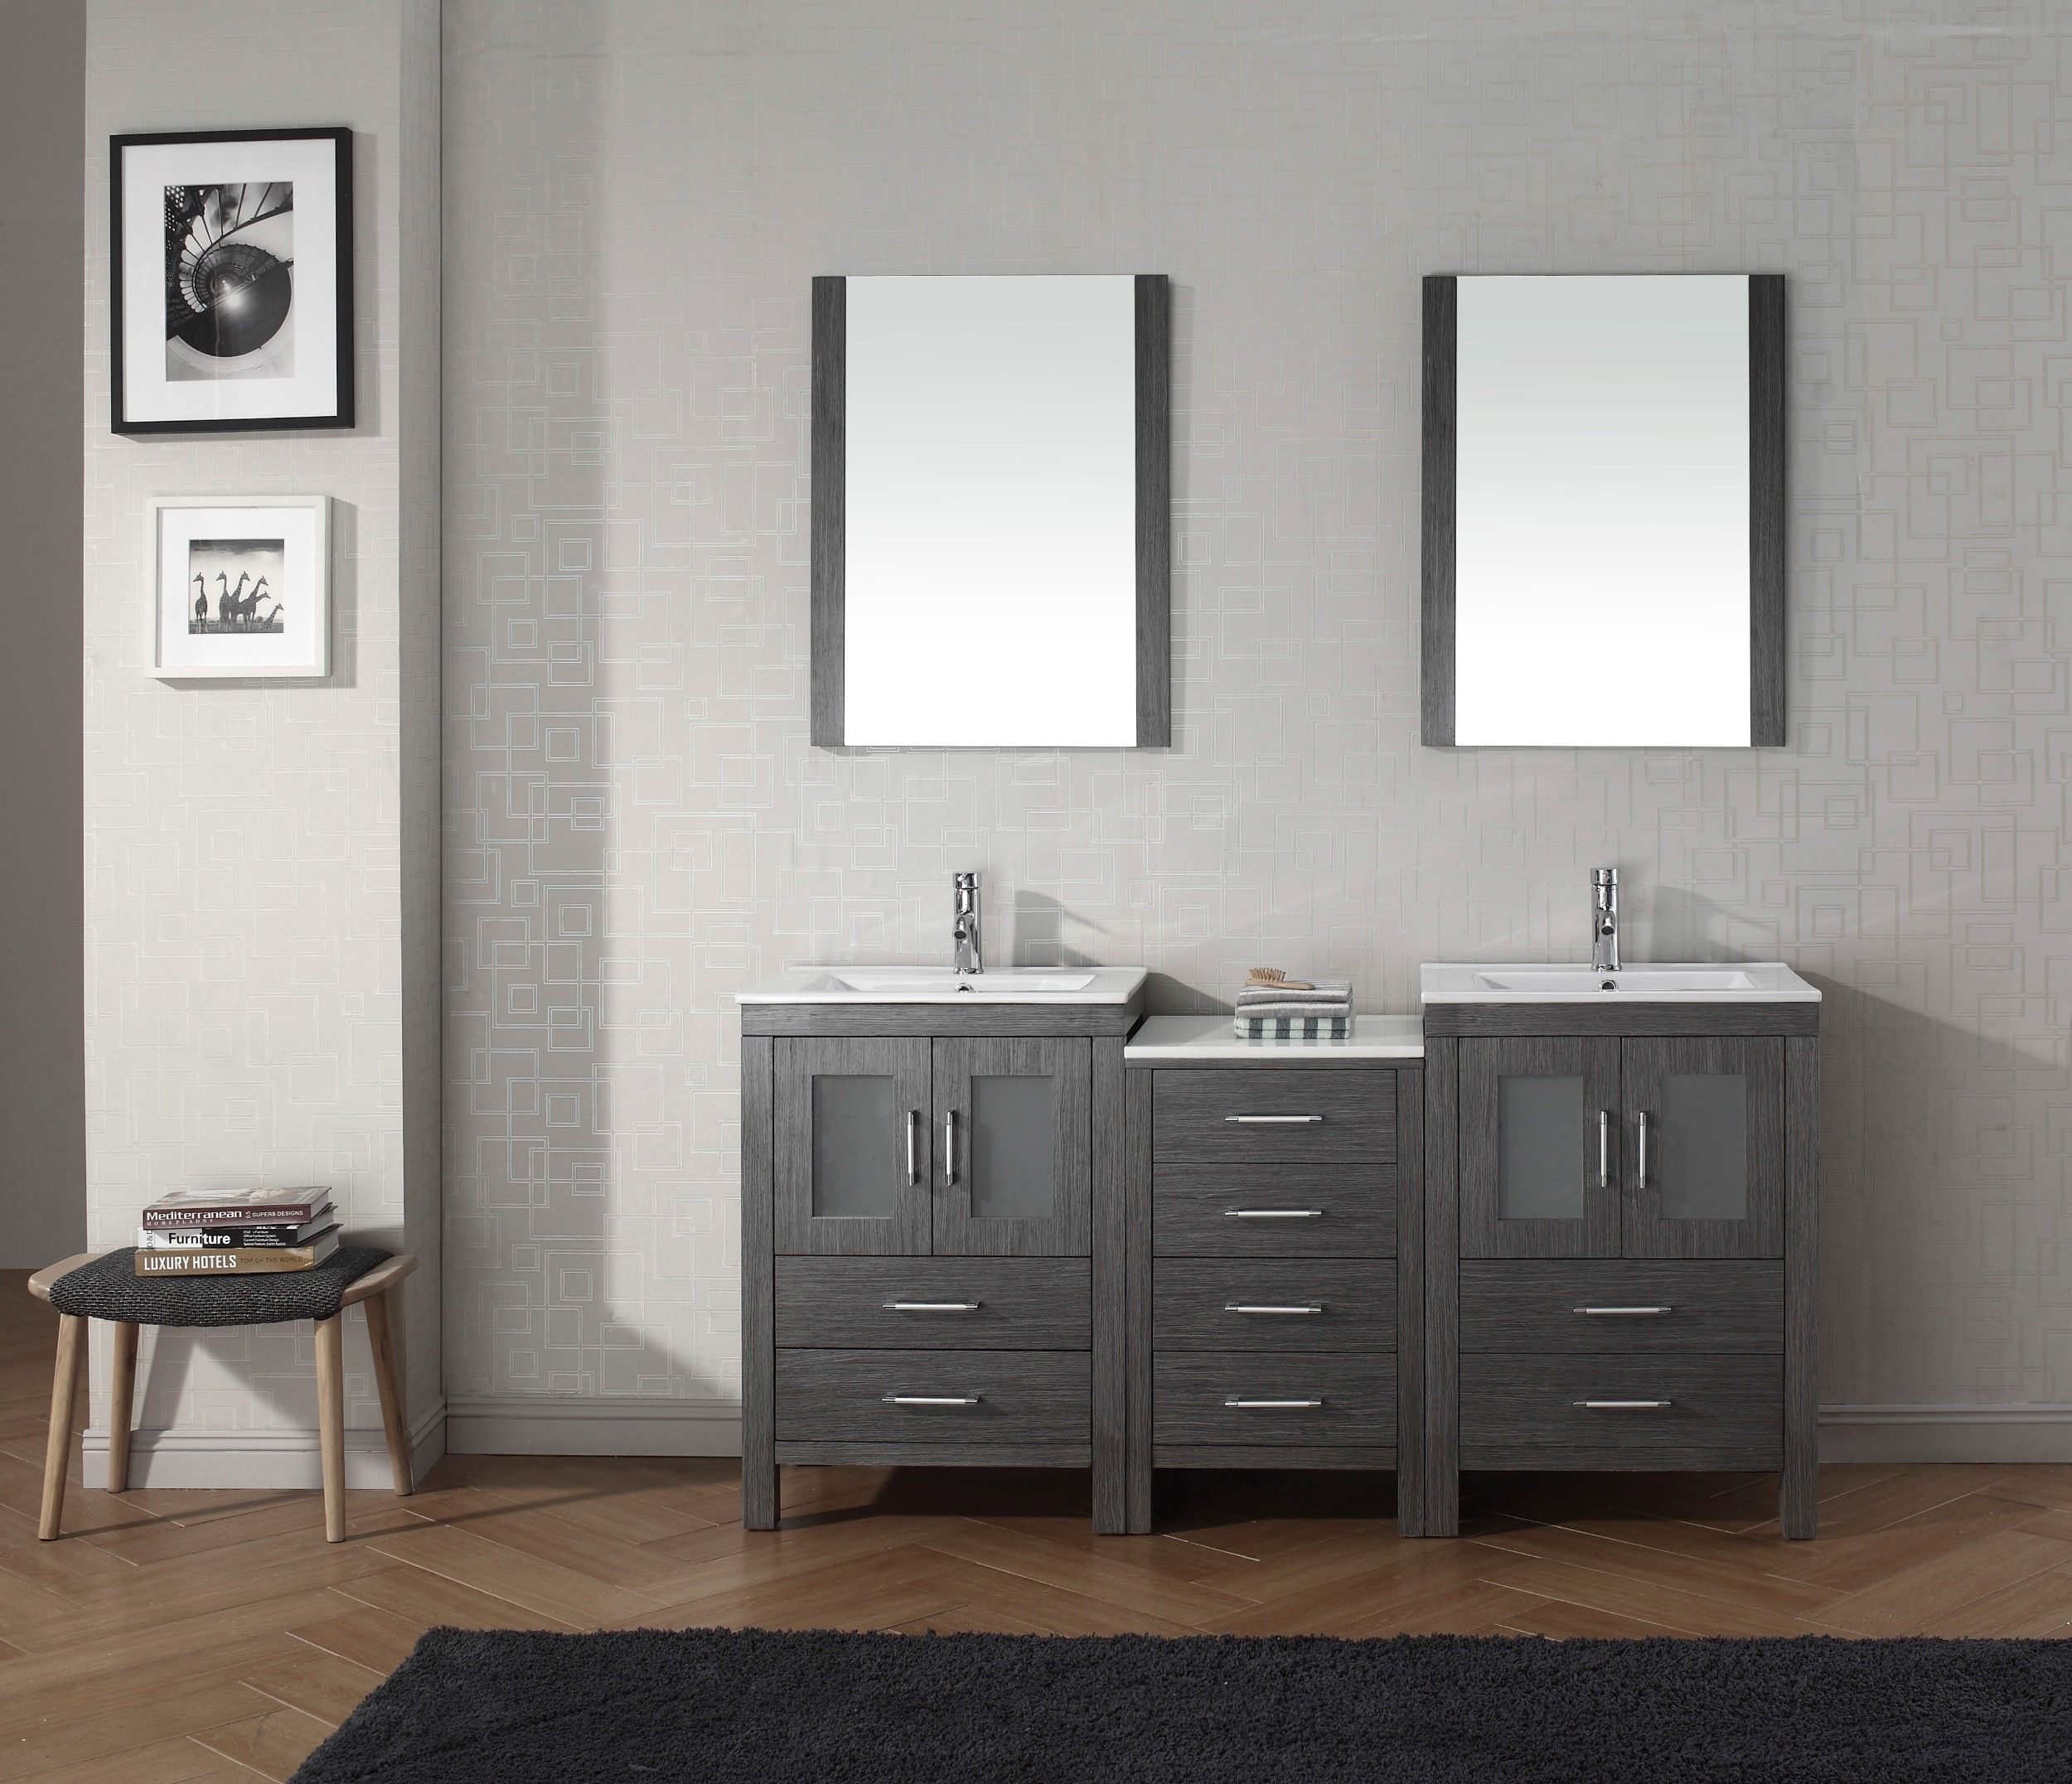 Polyurethane bathroom vanity unit with ceramic basin on metal legs - Dior 66 Double Bathroom Vanity Set In Zebra Grey